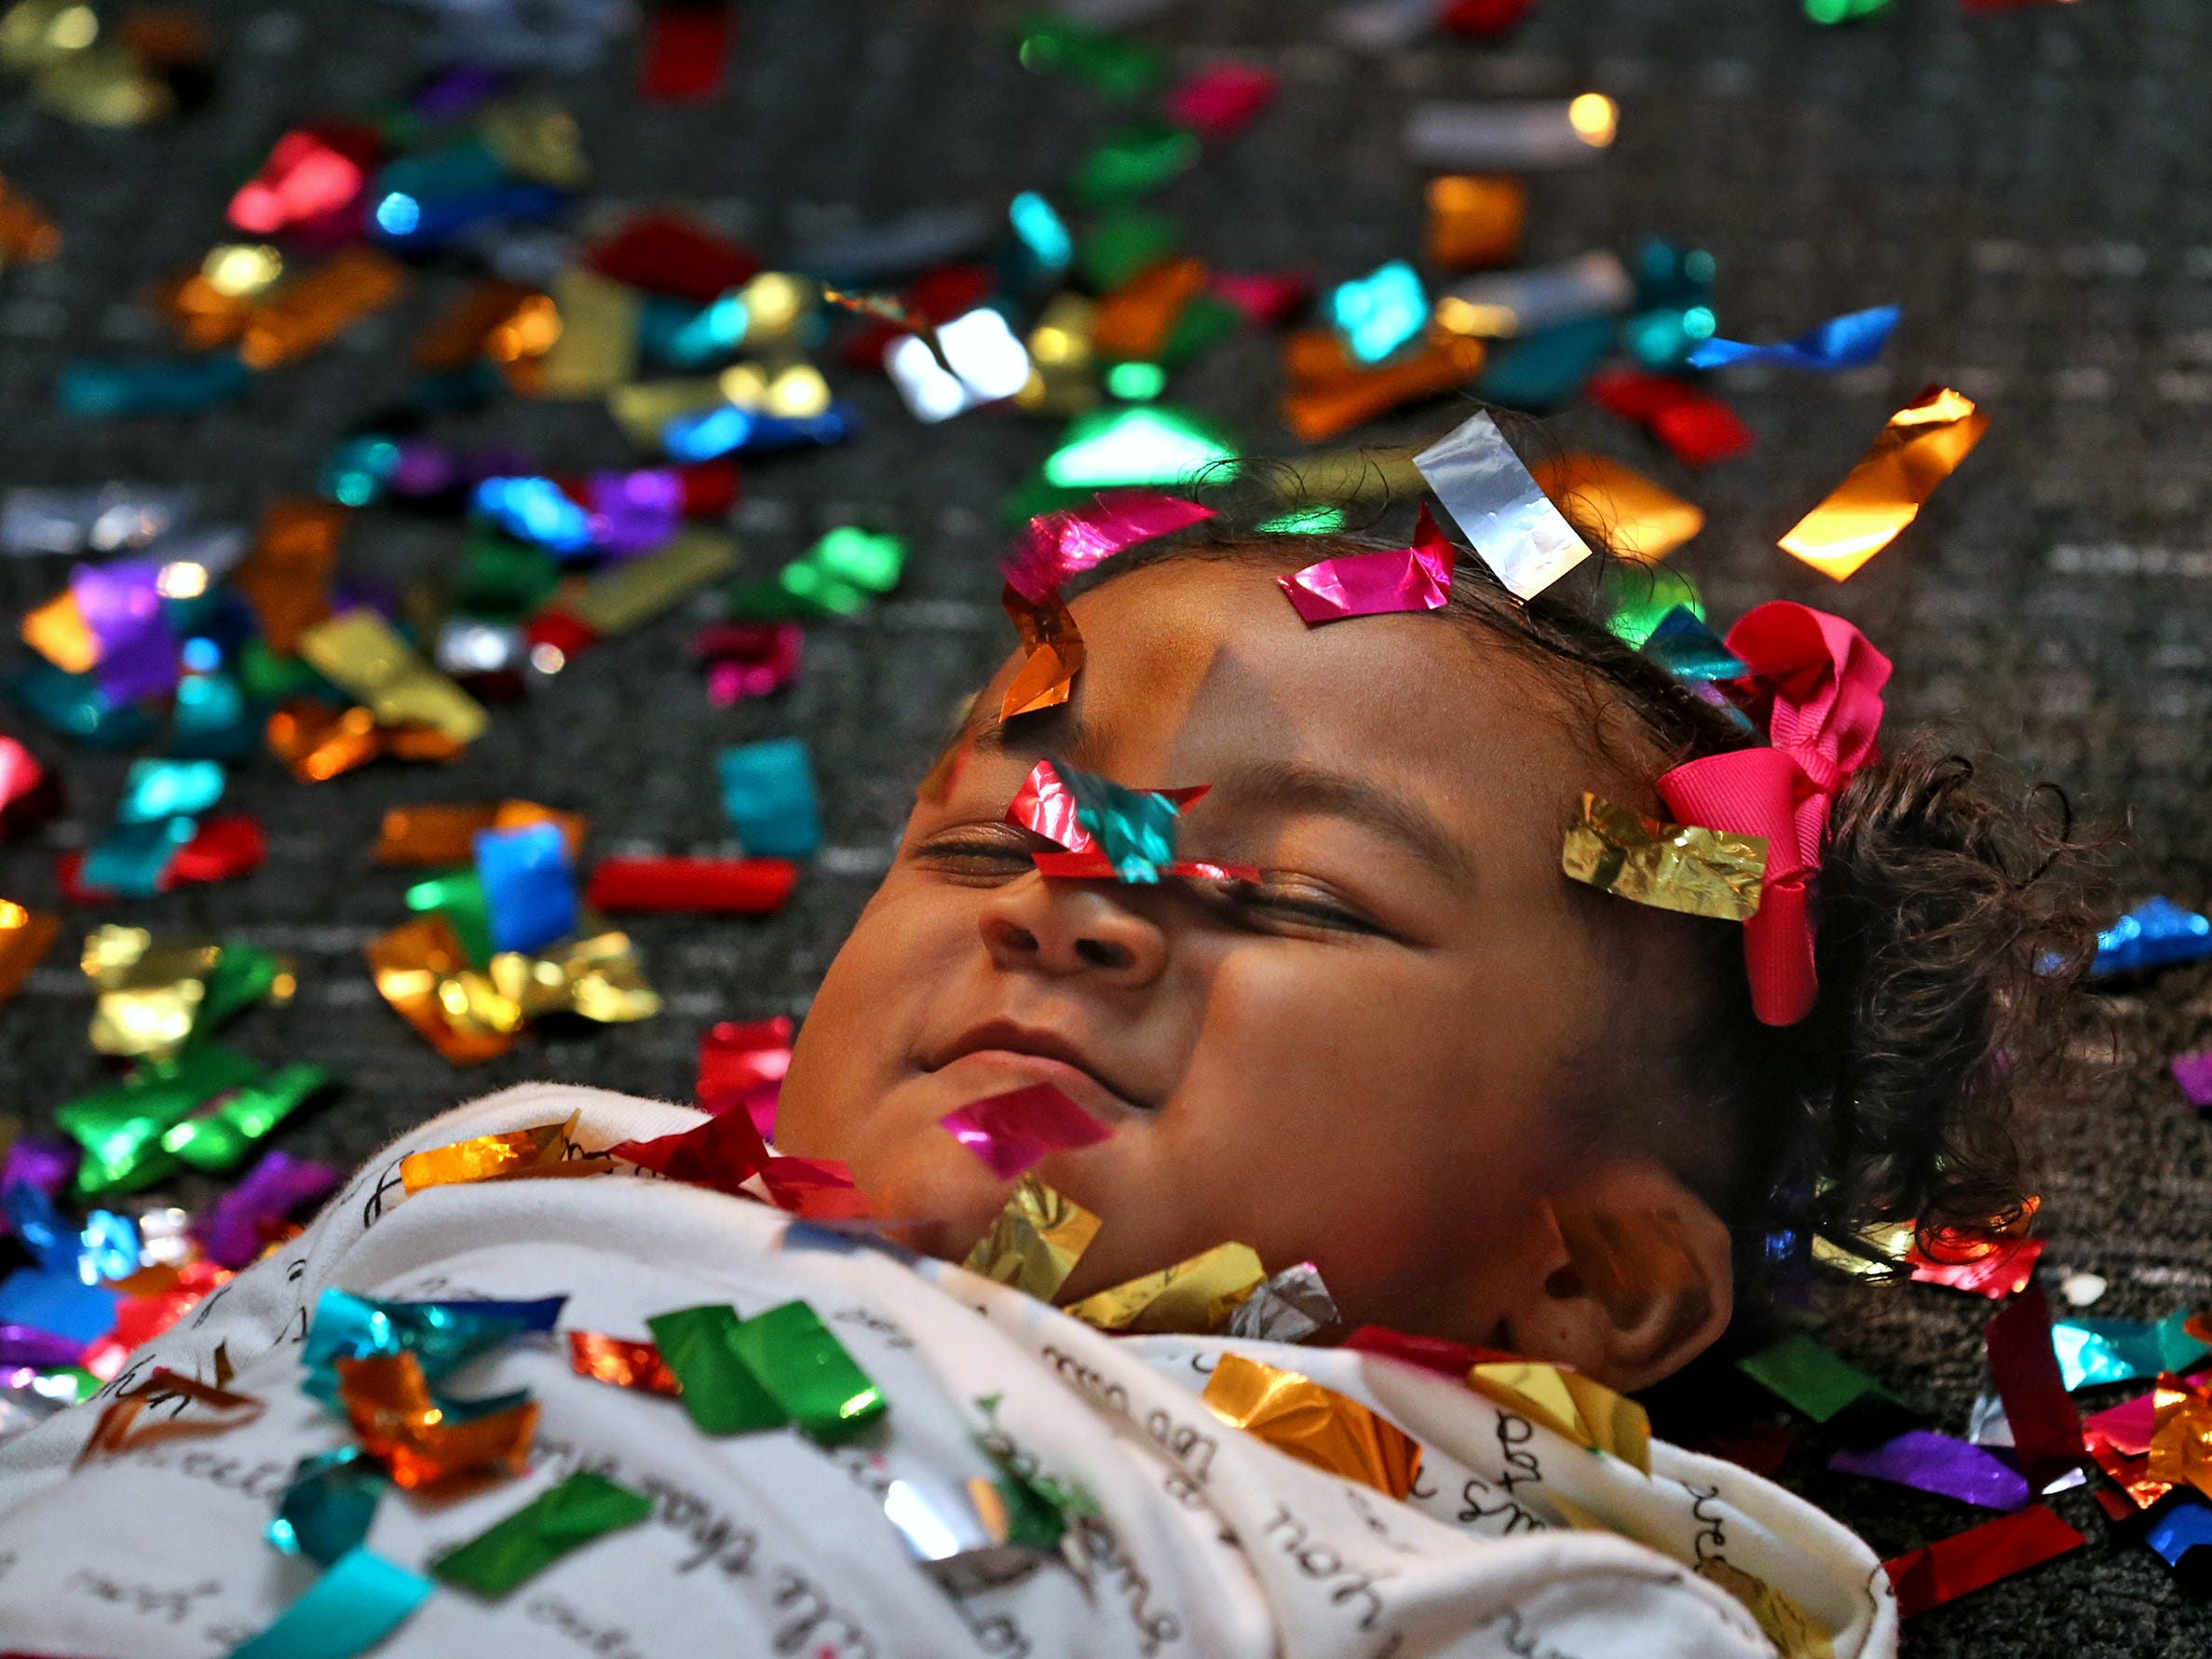 Kyndall Riley smiles while having confetti dropped on her face at the Countdown to noon celebration at the Children's Museum of Indianapolis, Monday, Dec. 31, 2018.